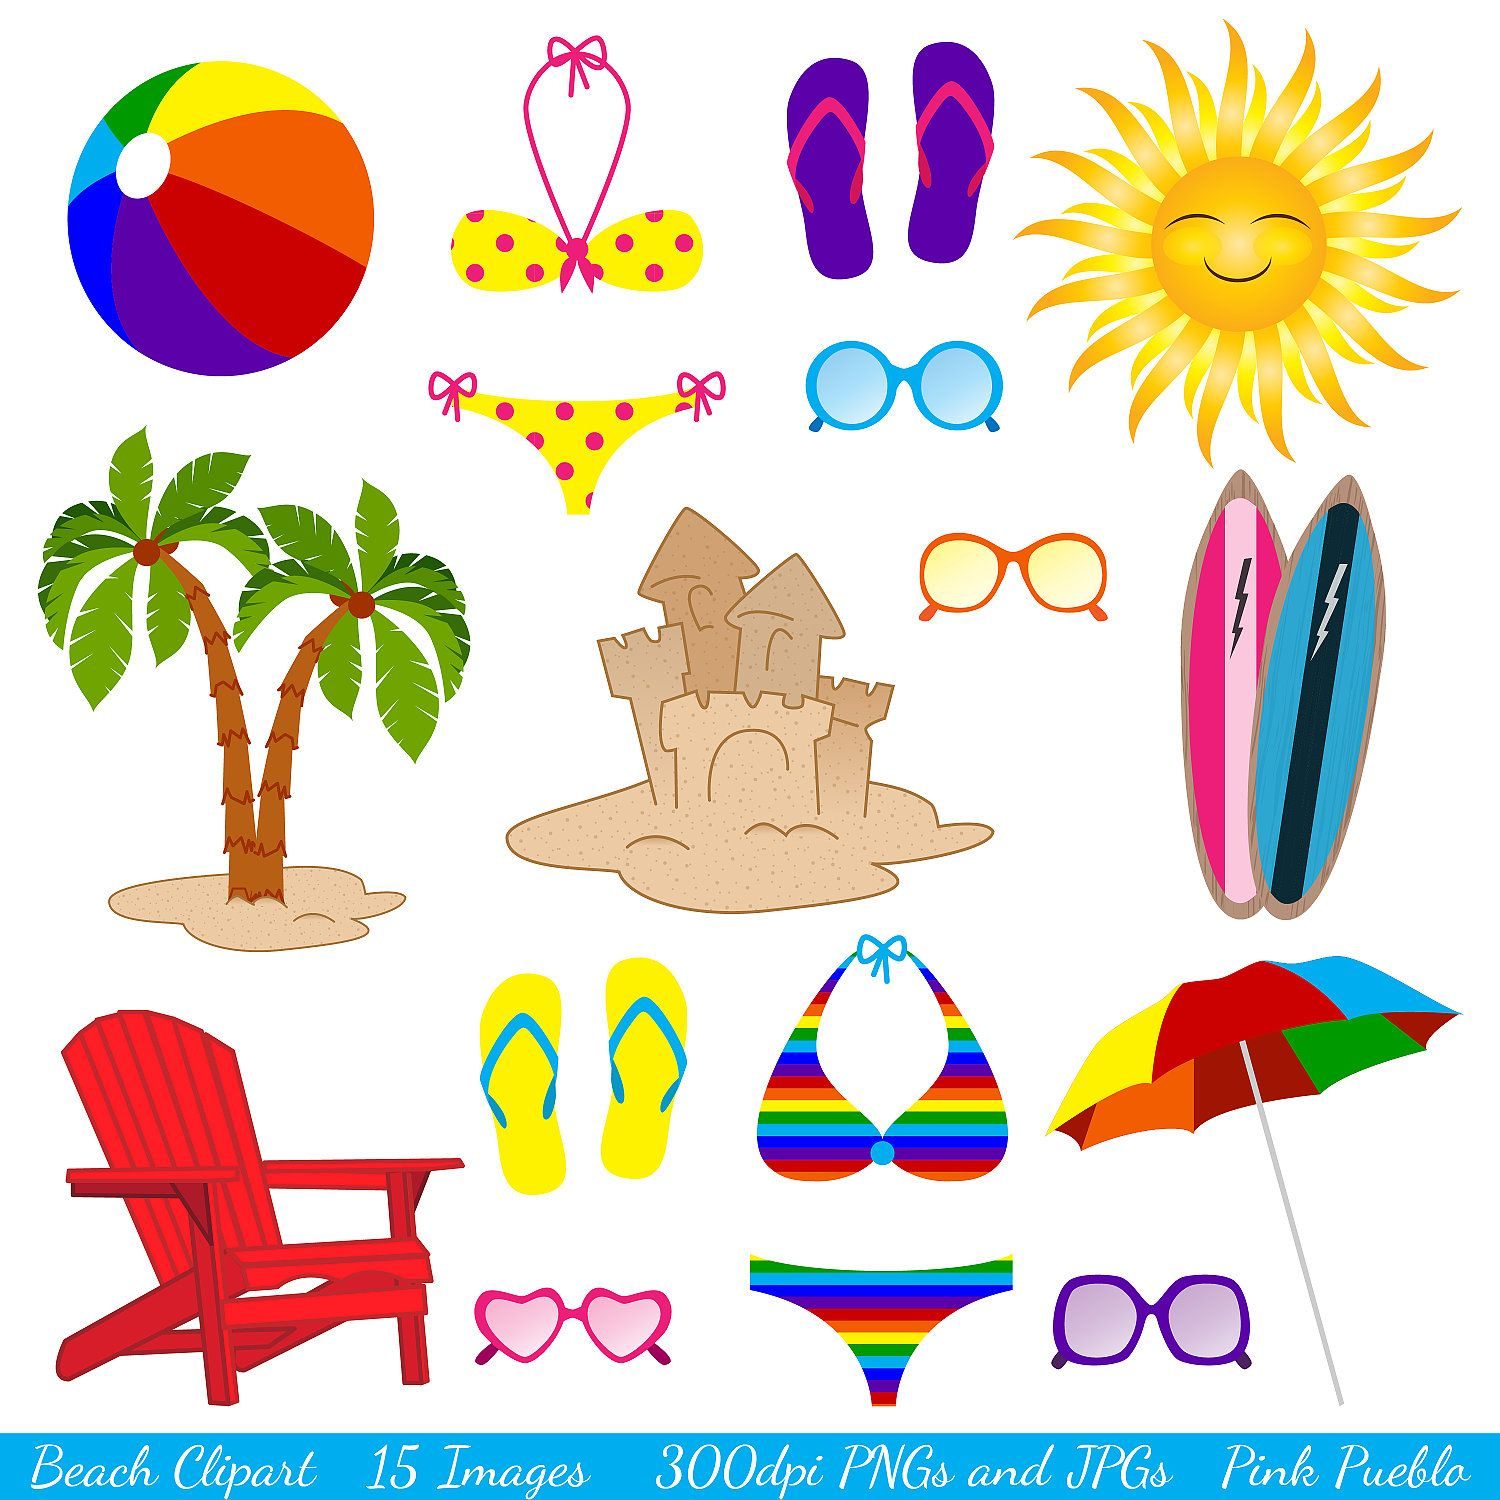 Beach Clipart Clip Art Summer Vacation Travel Vectors